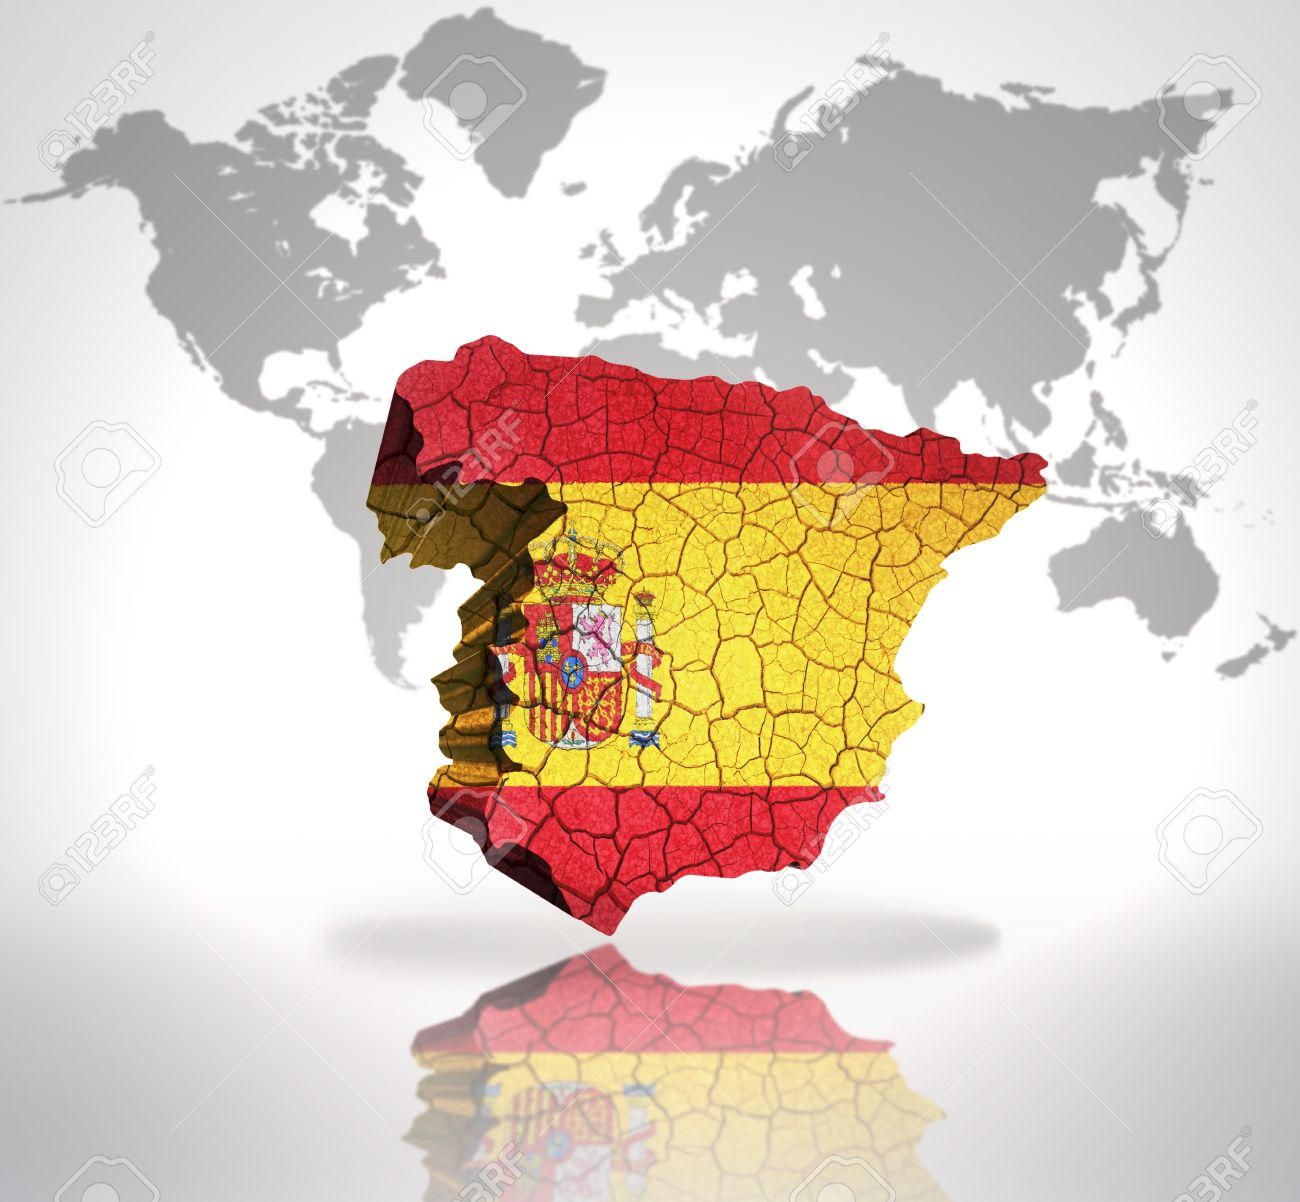 Map of spain with spanish flag on a world map background stock photo map of spain with spanish flag on a world map background stock photo 32675326 gumiabroncs Images